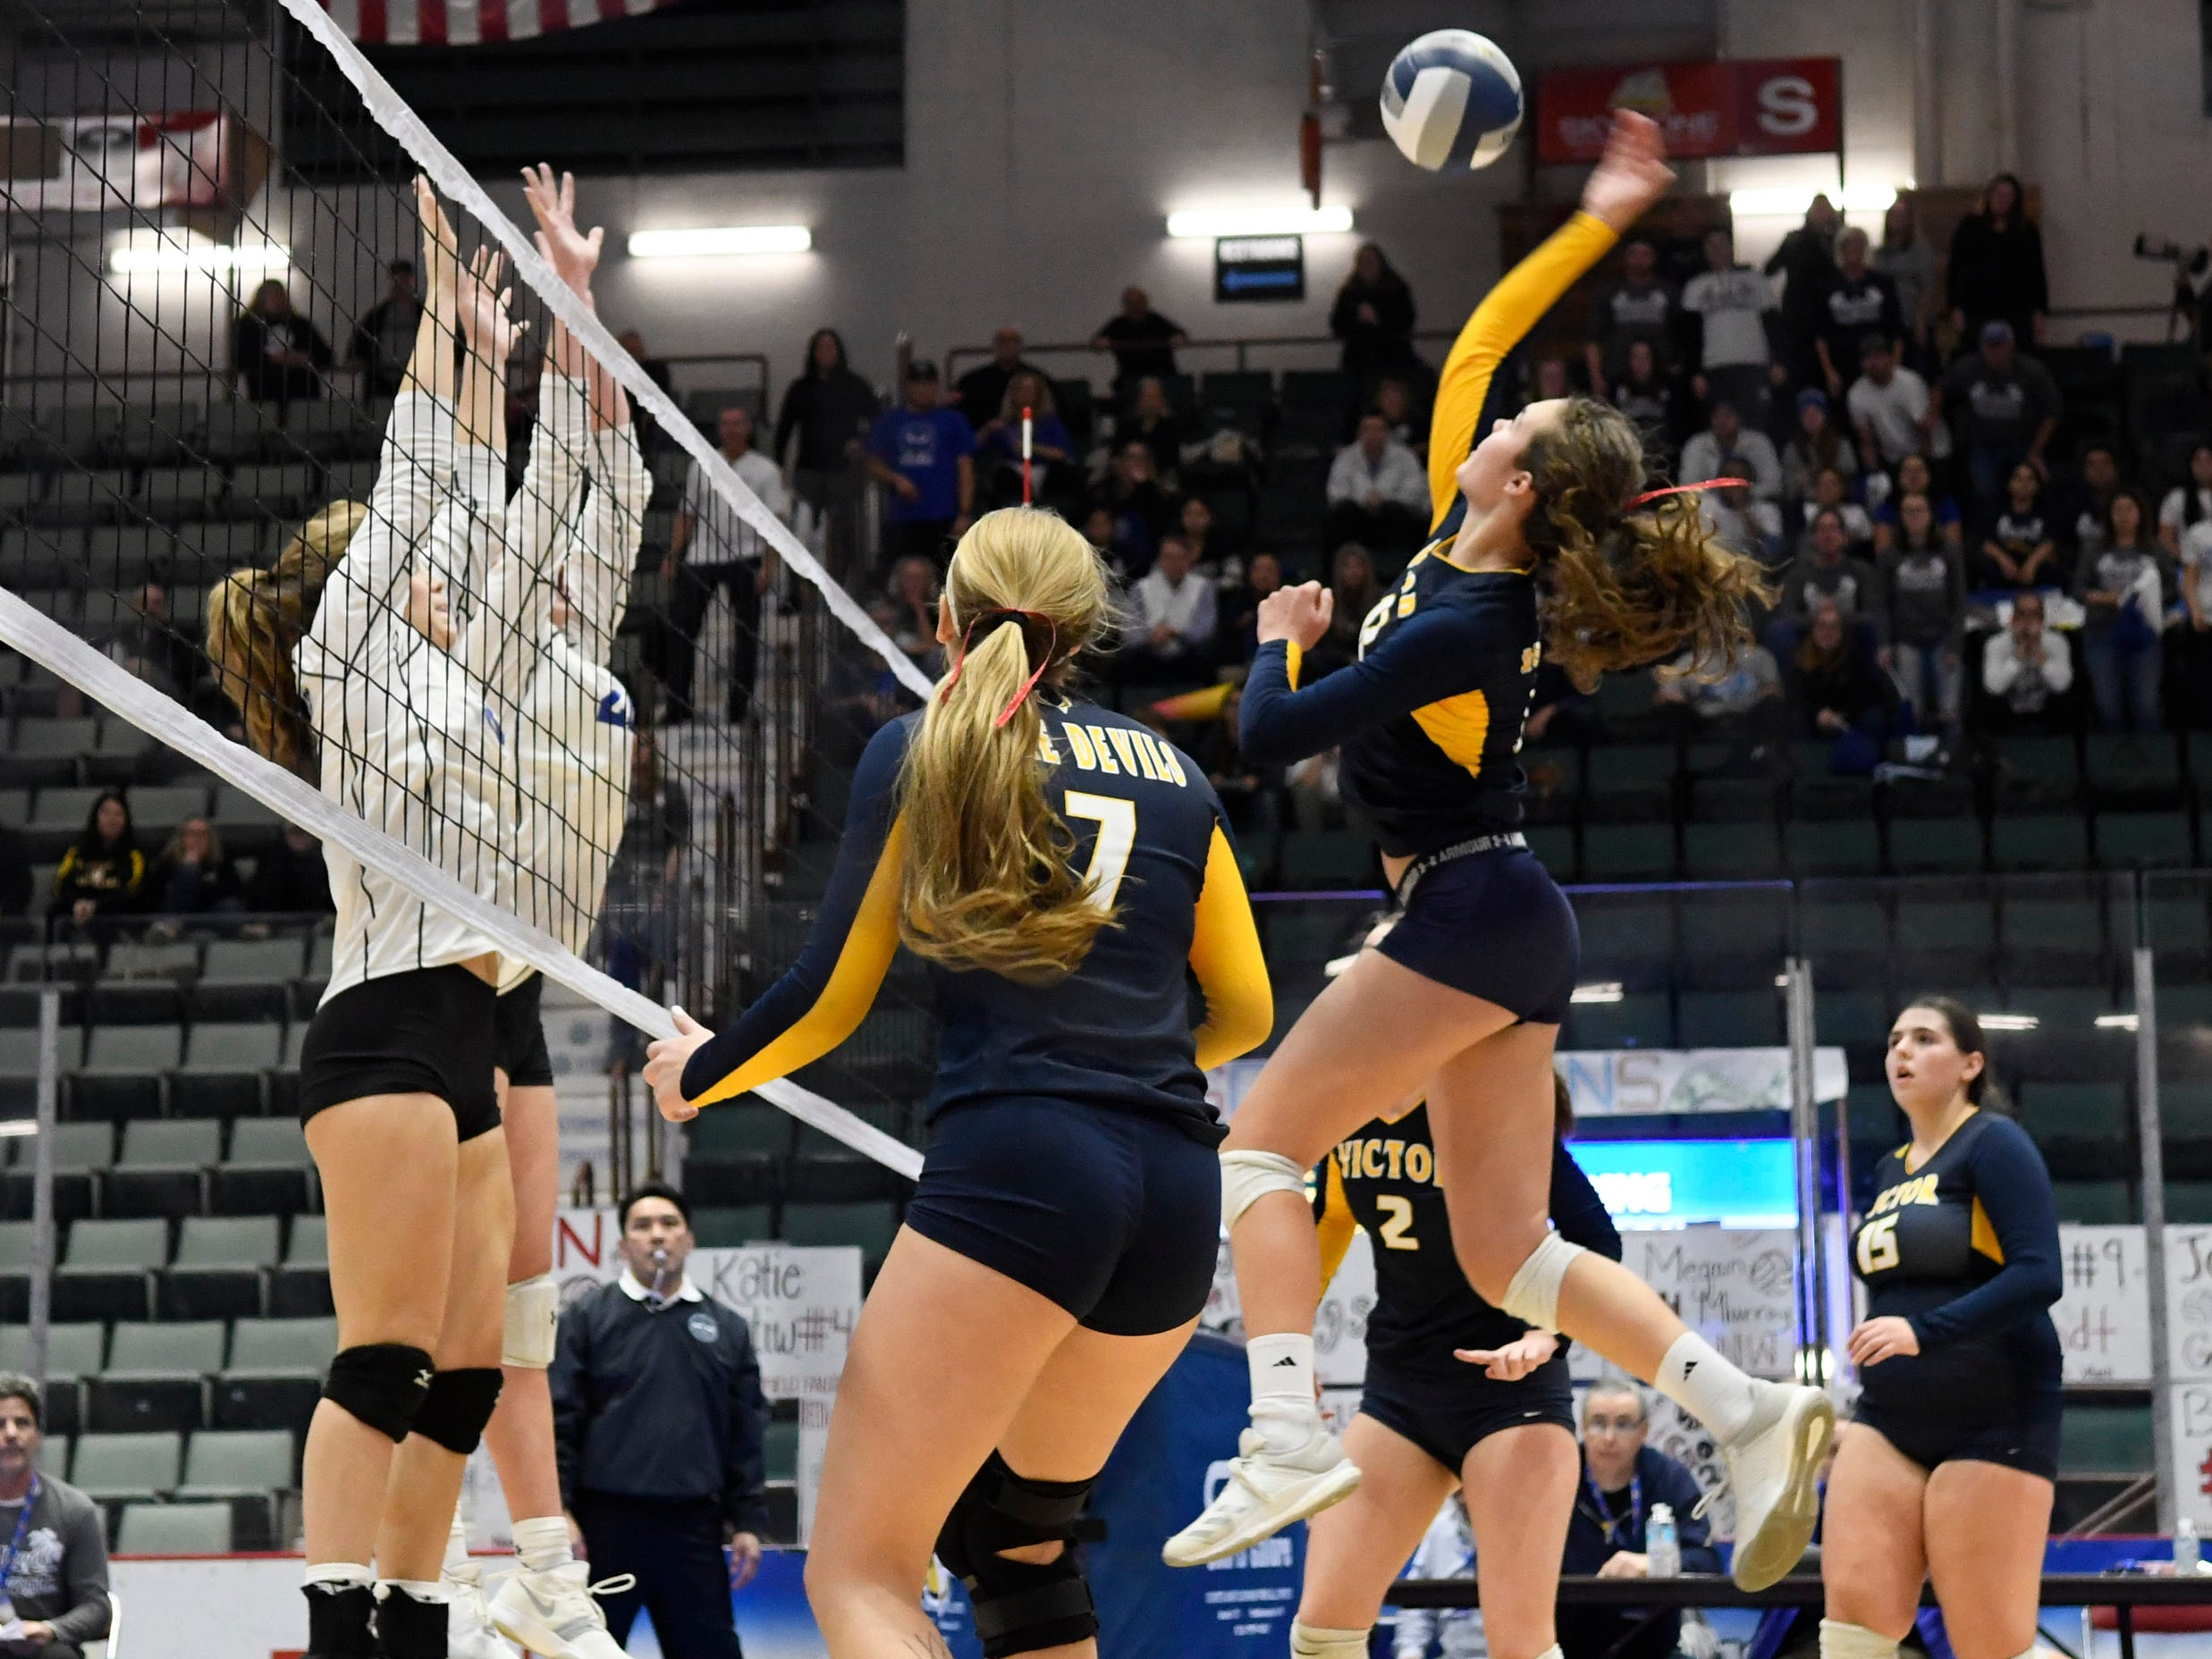 Victor's Emma Werkmeister spikes the ball as Long Beach players jump to block it during the Class AA state final on Sunday in Glens Falls.